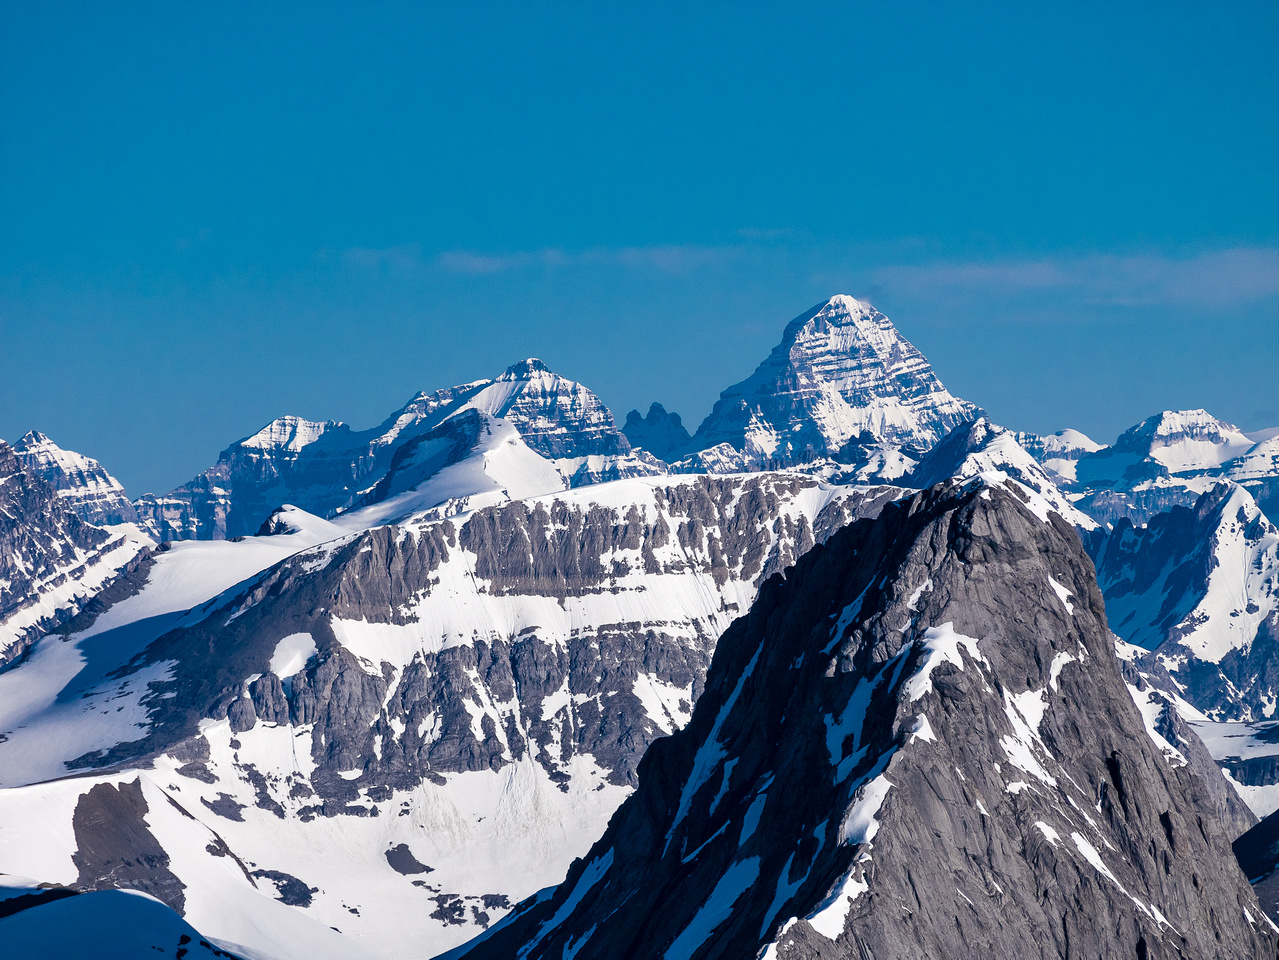 One of my favorite climbs - Assiniboine towers over one of my scariest ones - Northover!